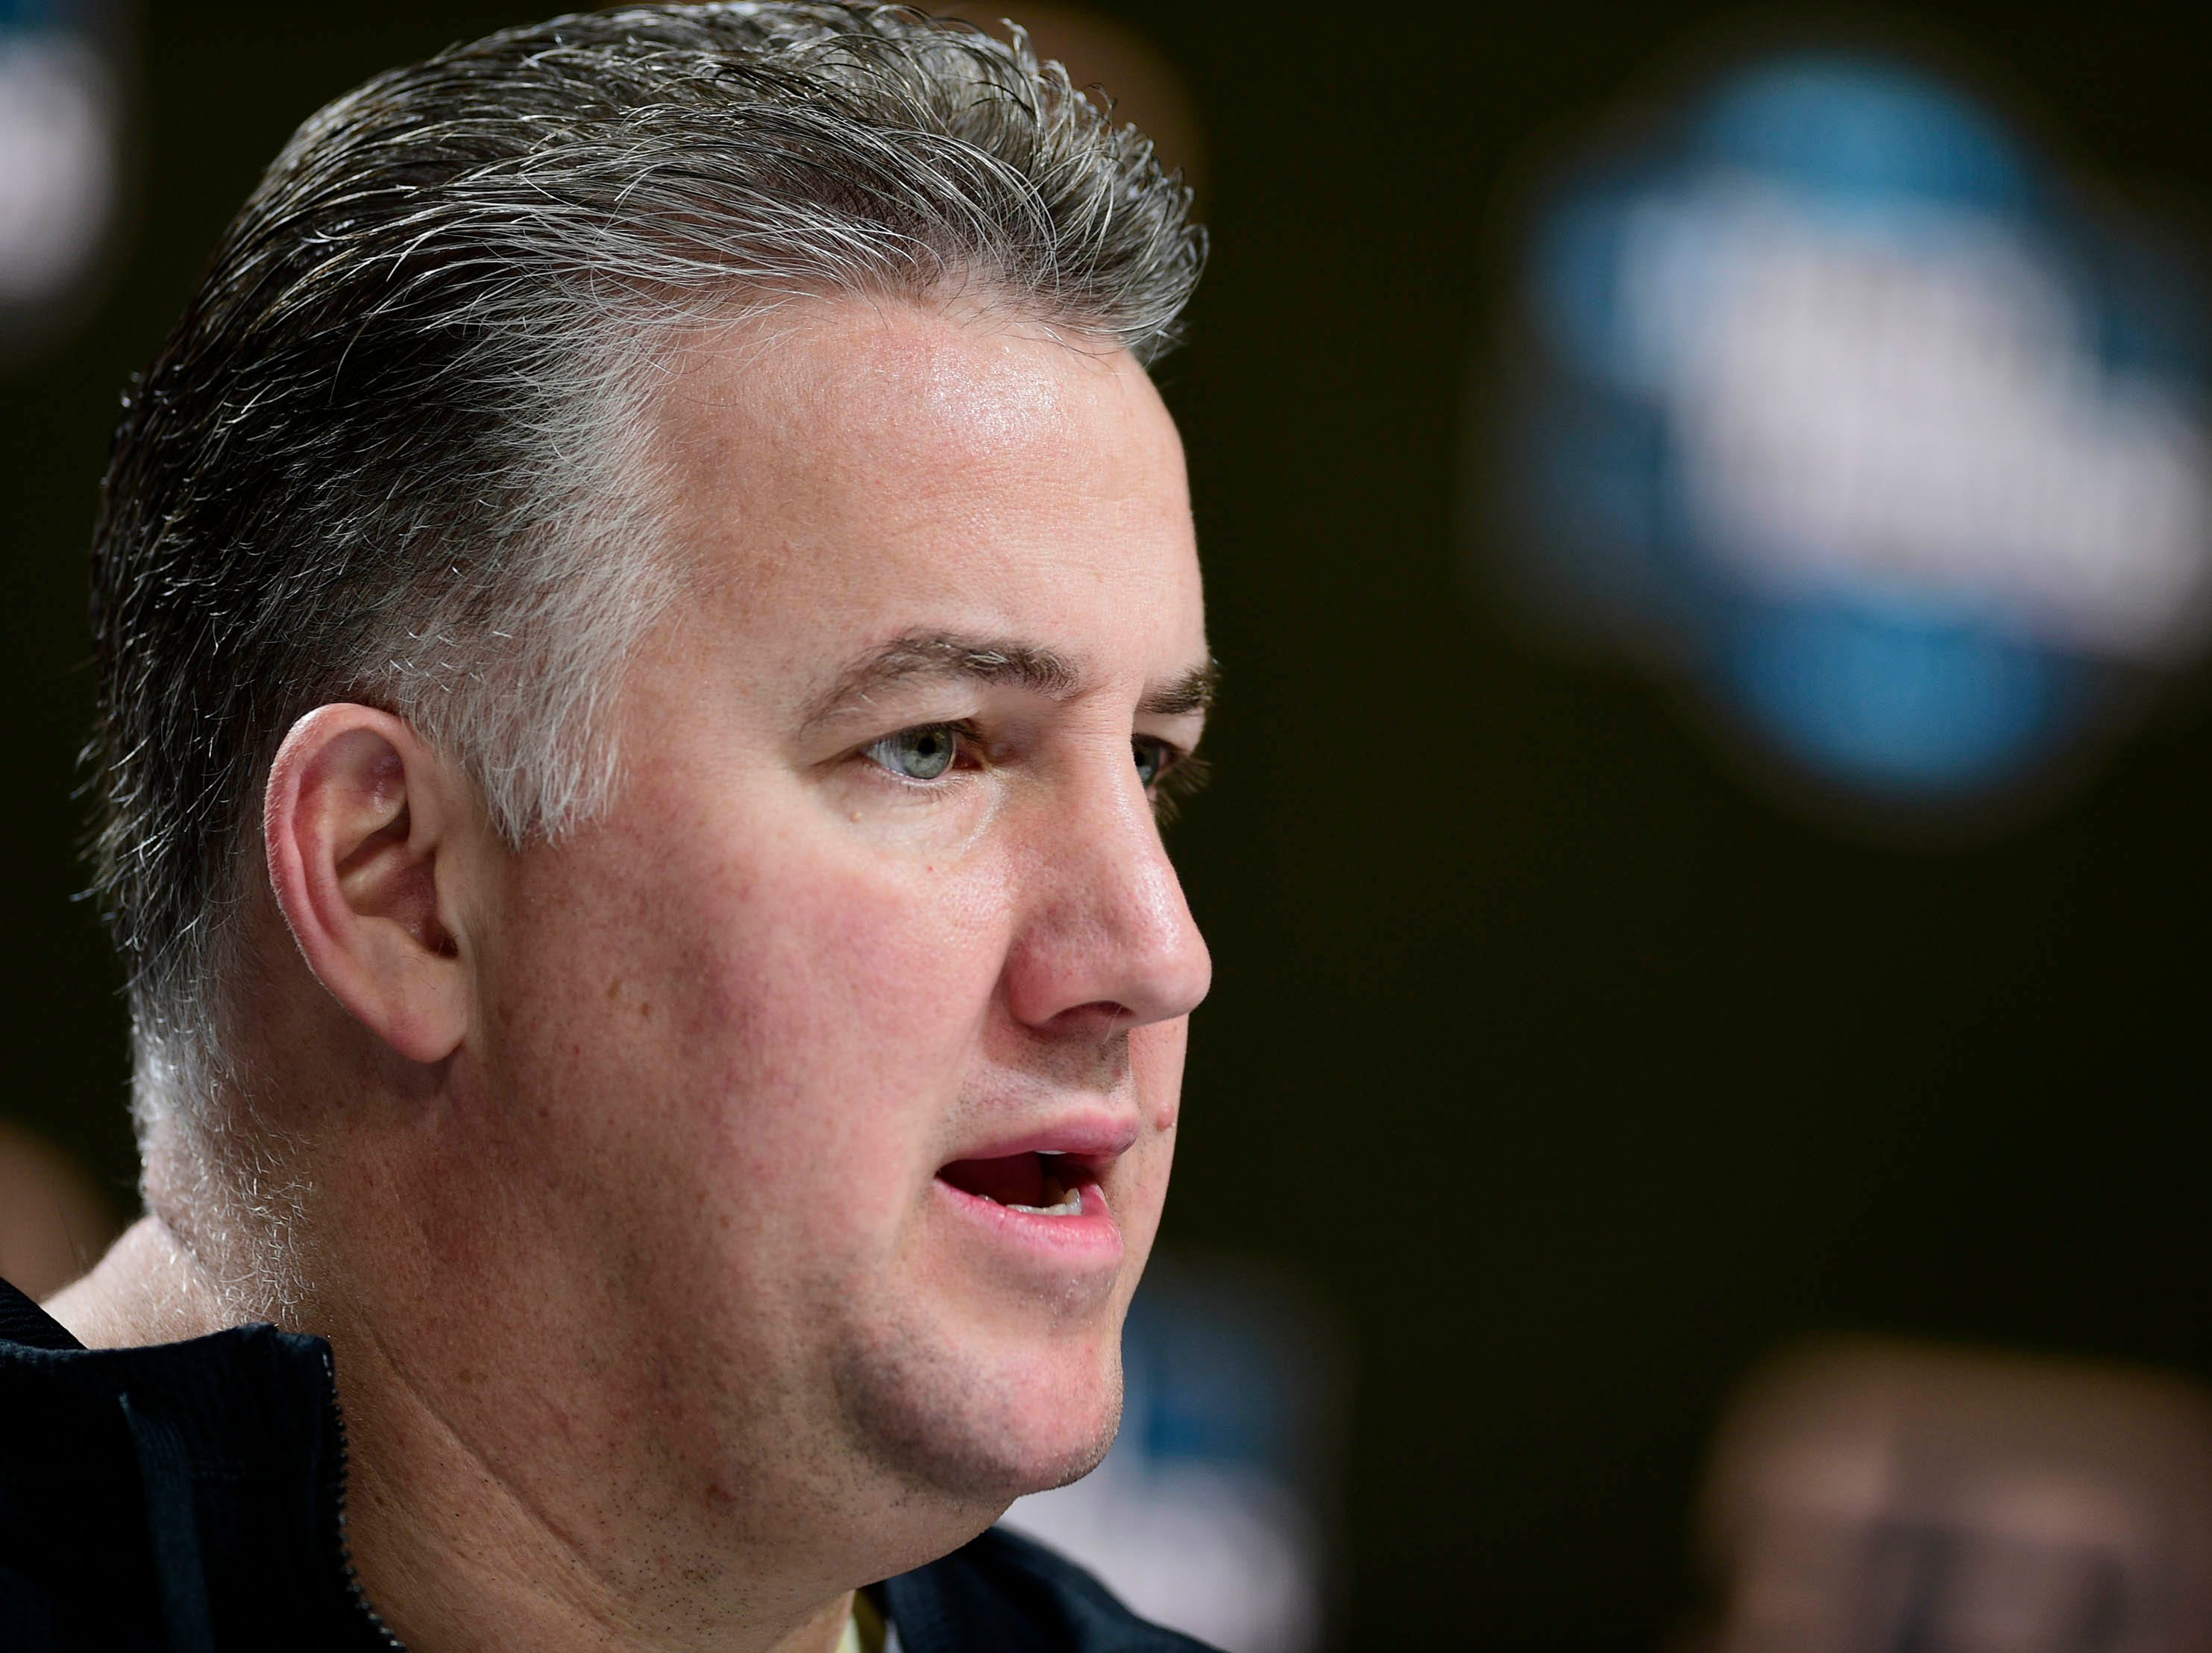 Mar 27, 2019; Louisville, KY, United States; Purdue Boilermakers head coach Matt Painter speaks during a press conference for the south regional of the 2019 NCAA Tournament at KFC Yum Center. Mandatory Credit: Thomas J. Russo-USA TODAY Sports